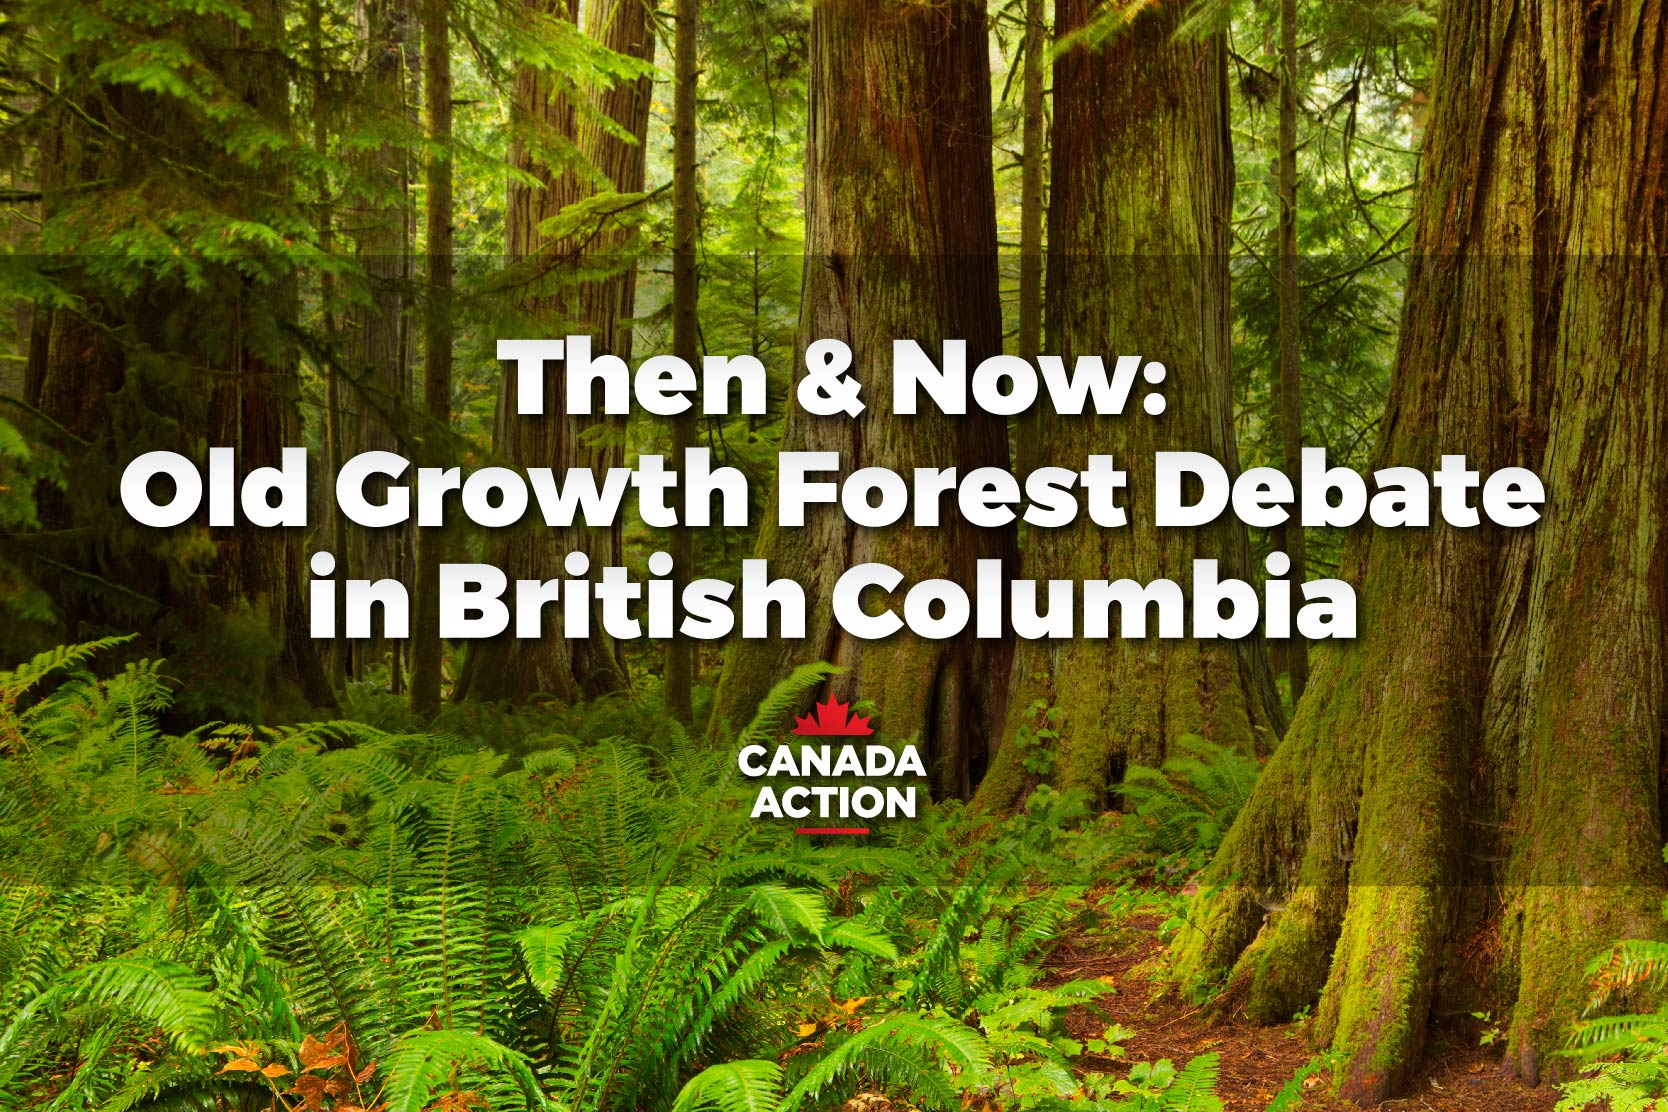 Three Decades of Forest Debate in British Columbia, But the Friction Continues